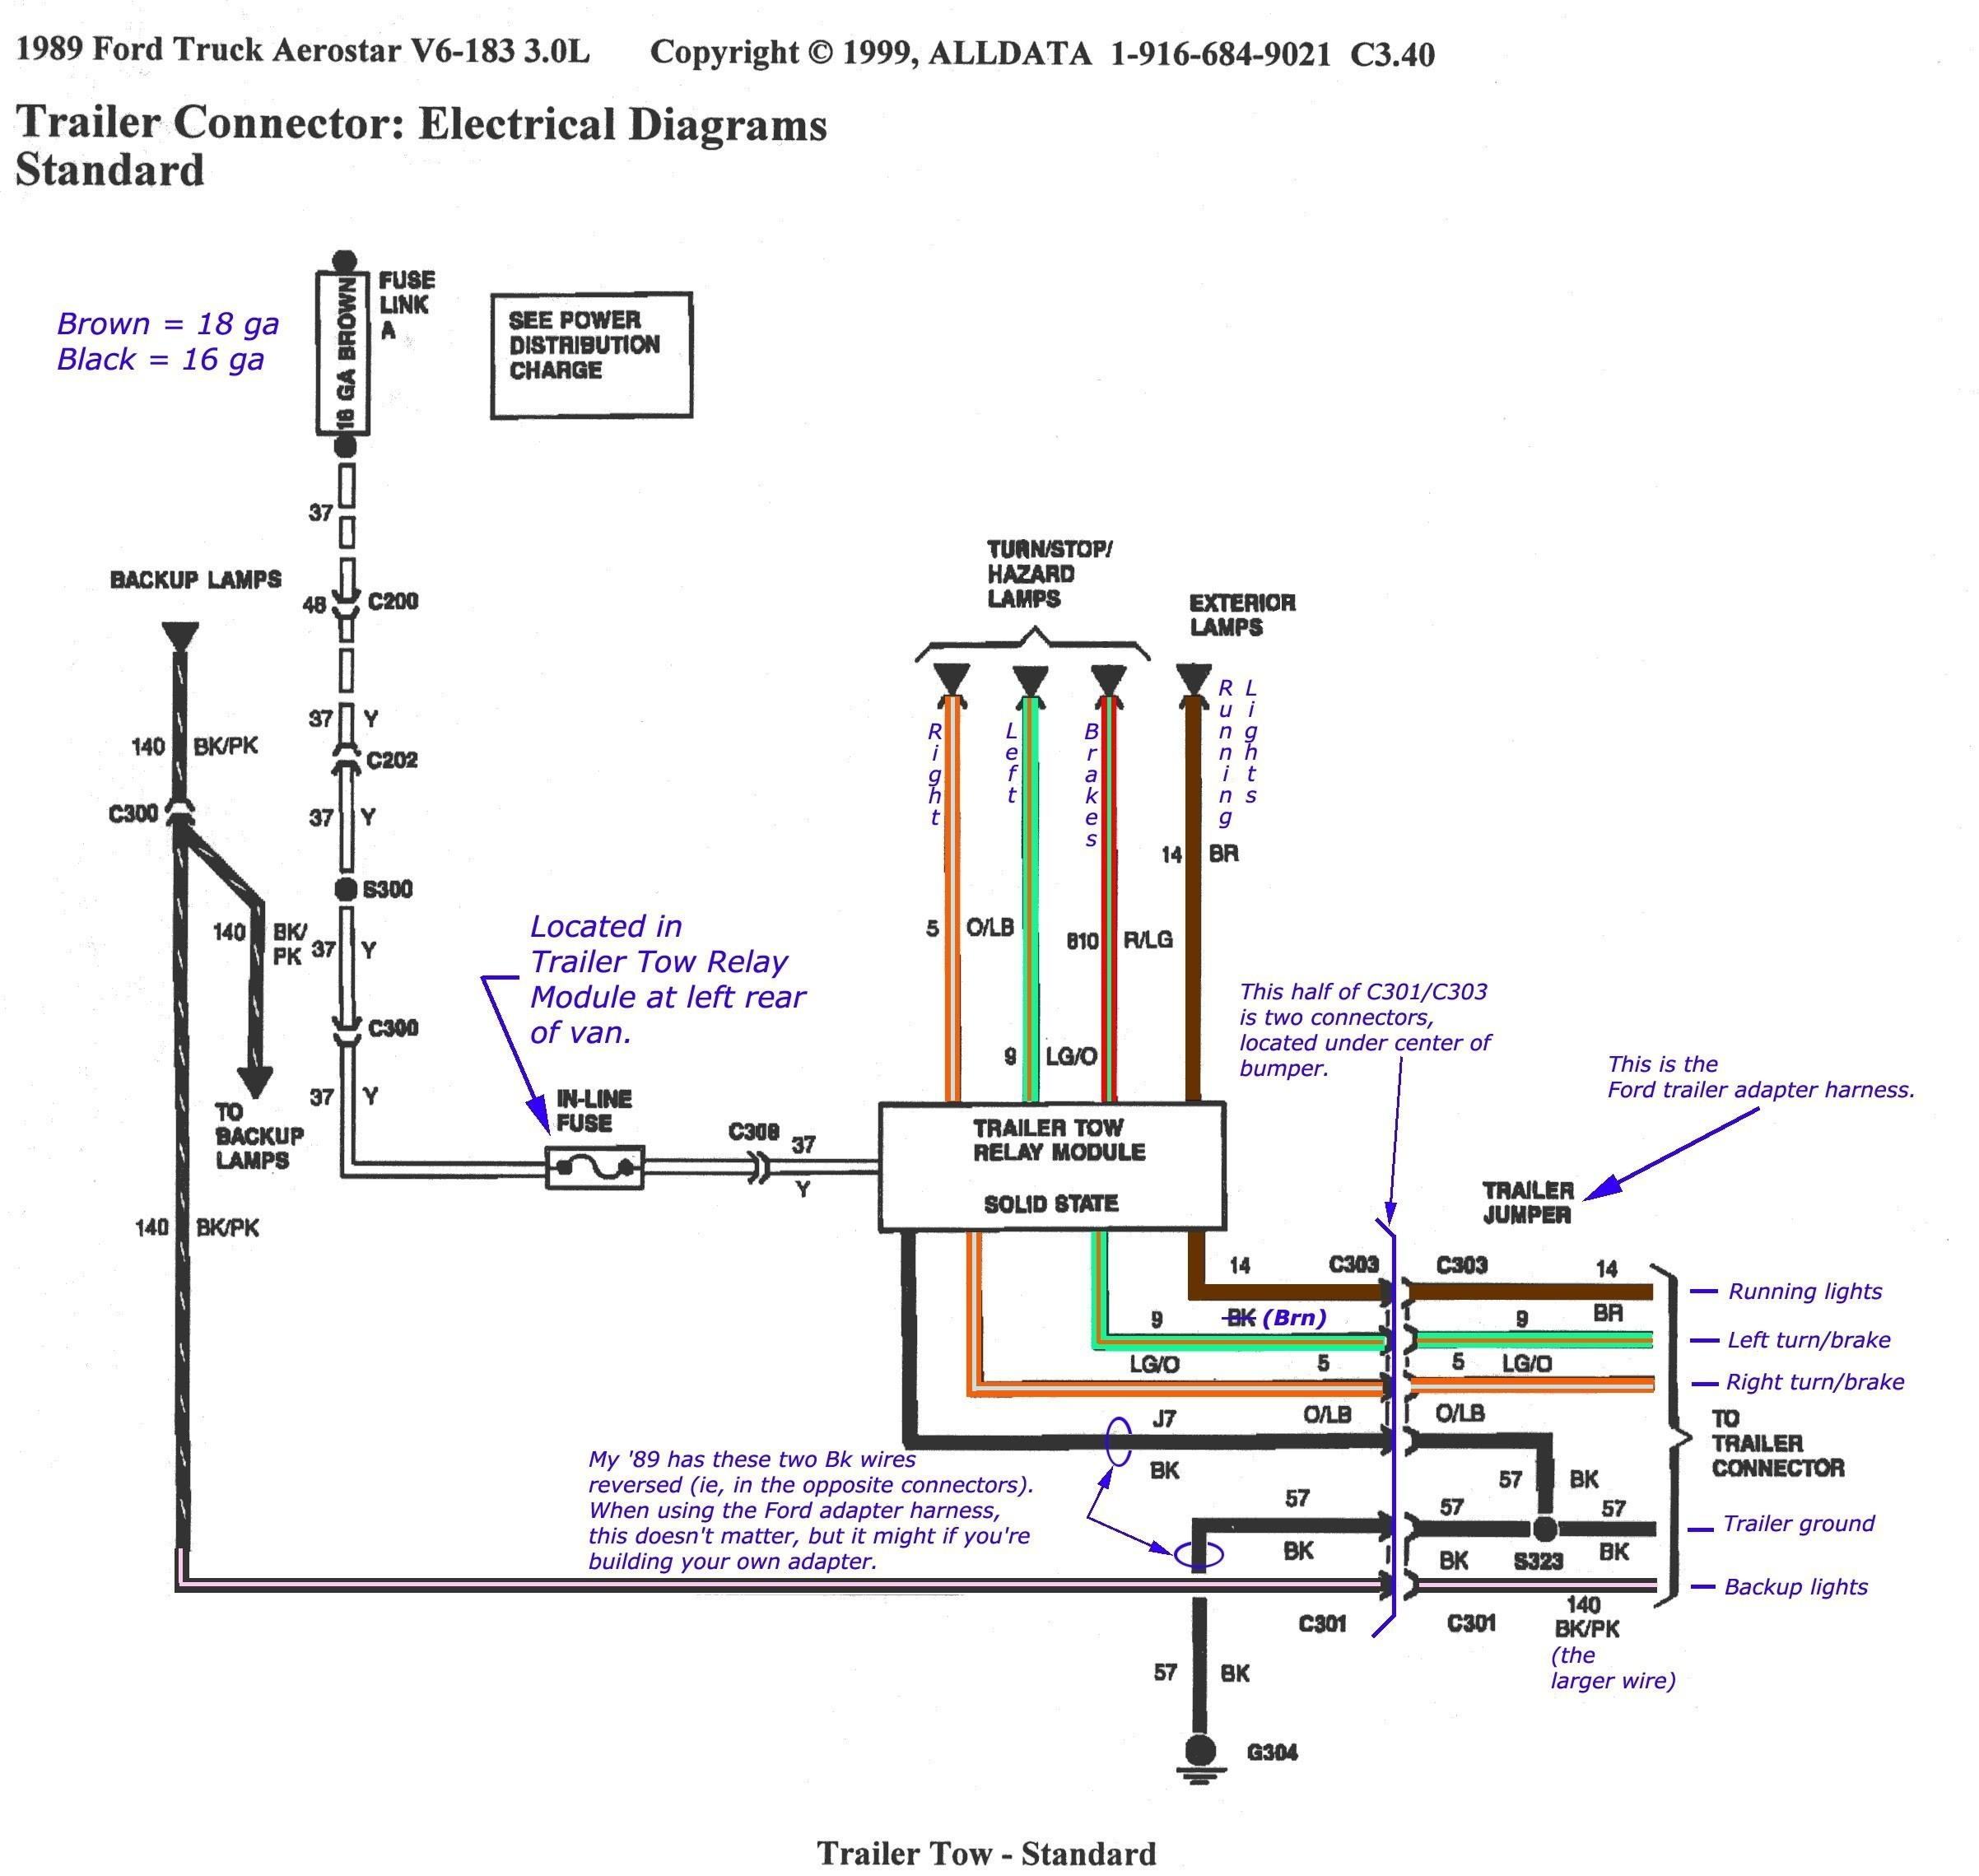 roadmaster wiring diode diagram Download-2005 f250 tow kit wiring scheme wire center u2022 rh wiremopsa co Roadmaster Universal Wiring Kit Roadmaster Universal Wiring Kit 5-t